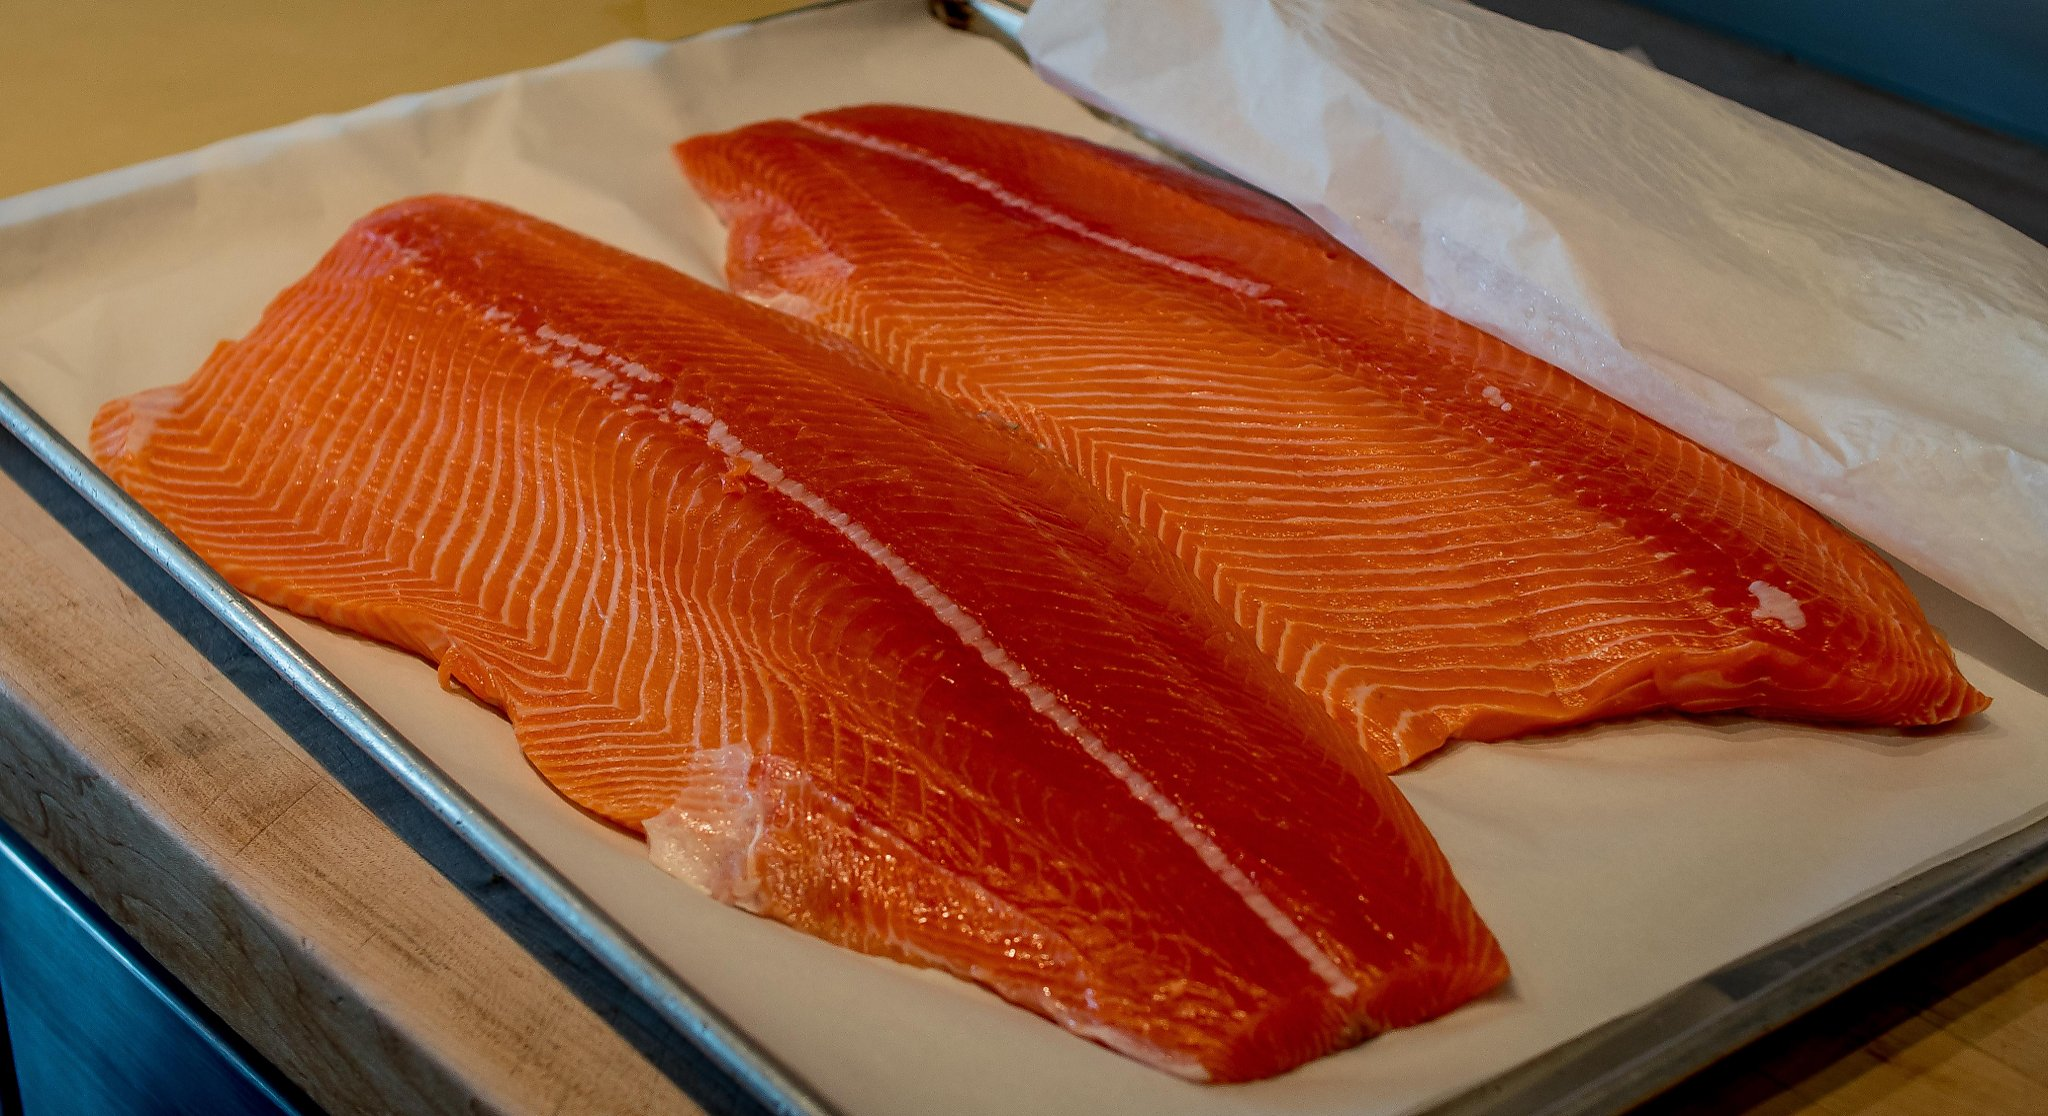 King salmon becomes a luxury product as catch proves elusive ...